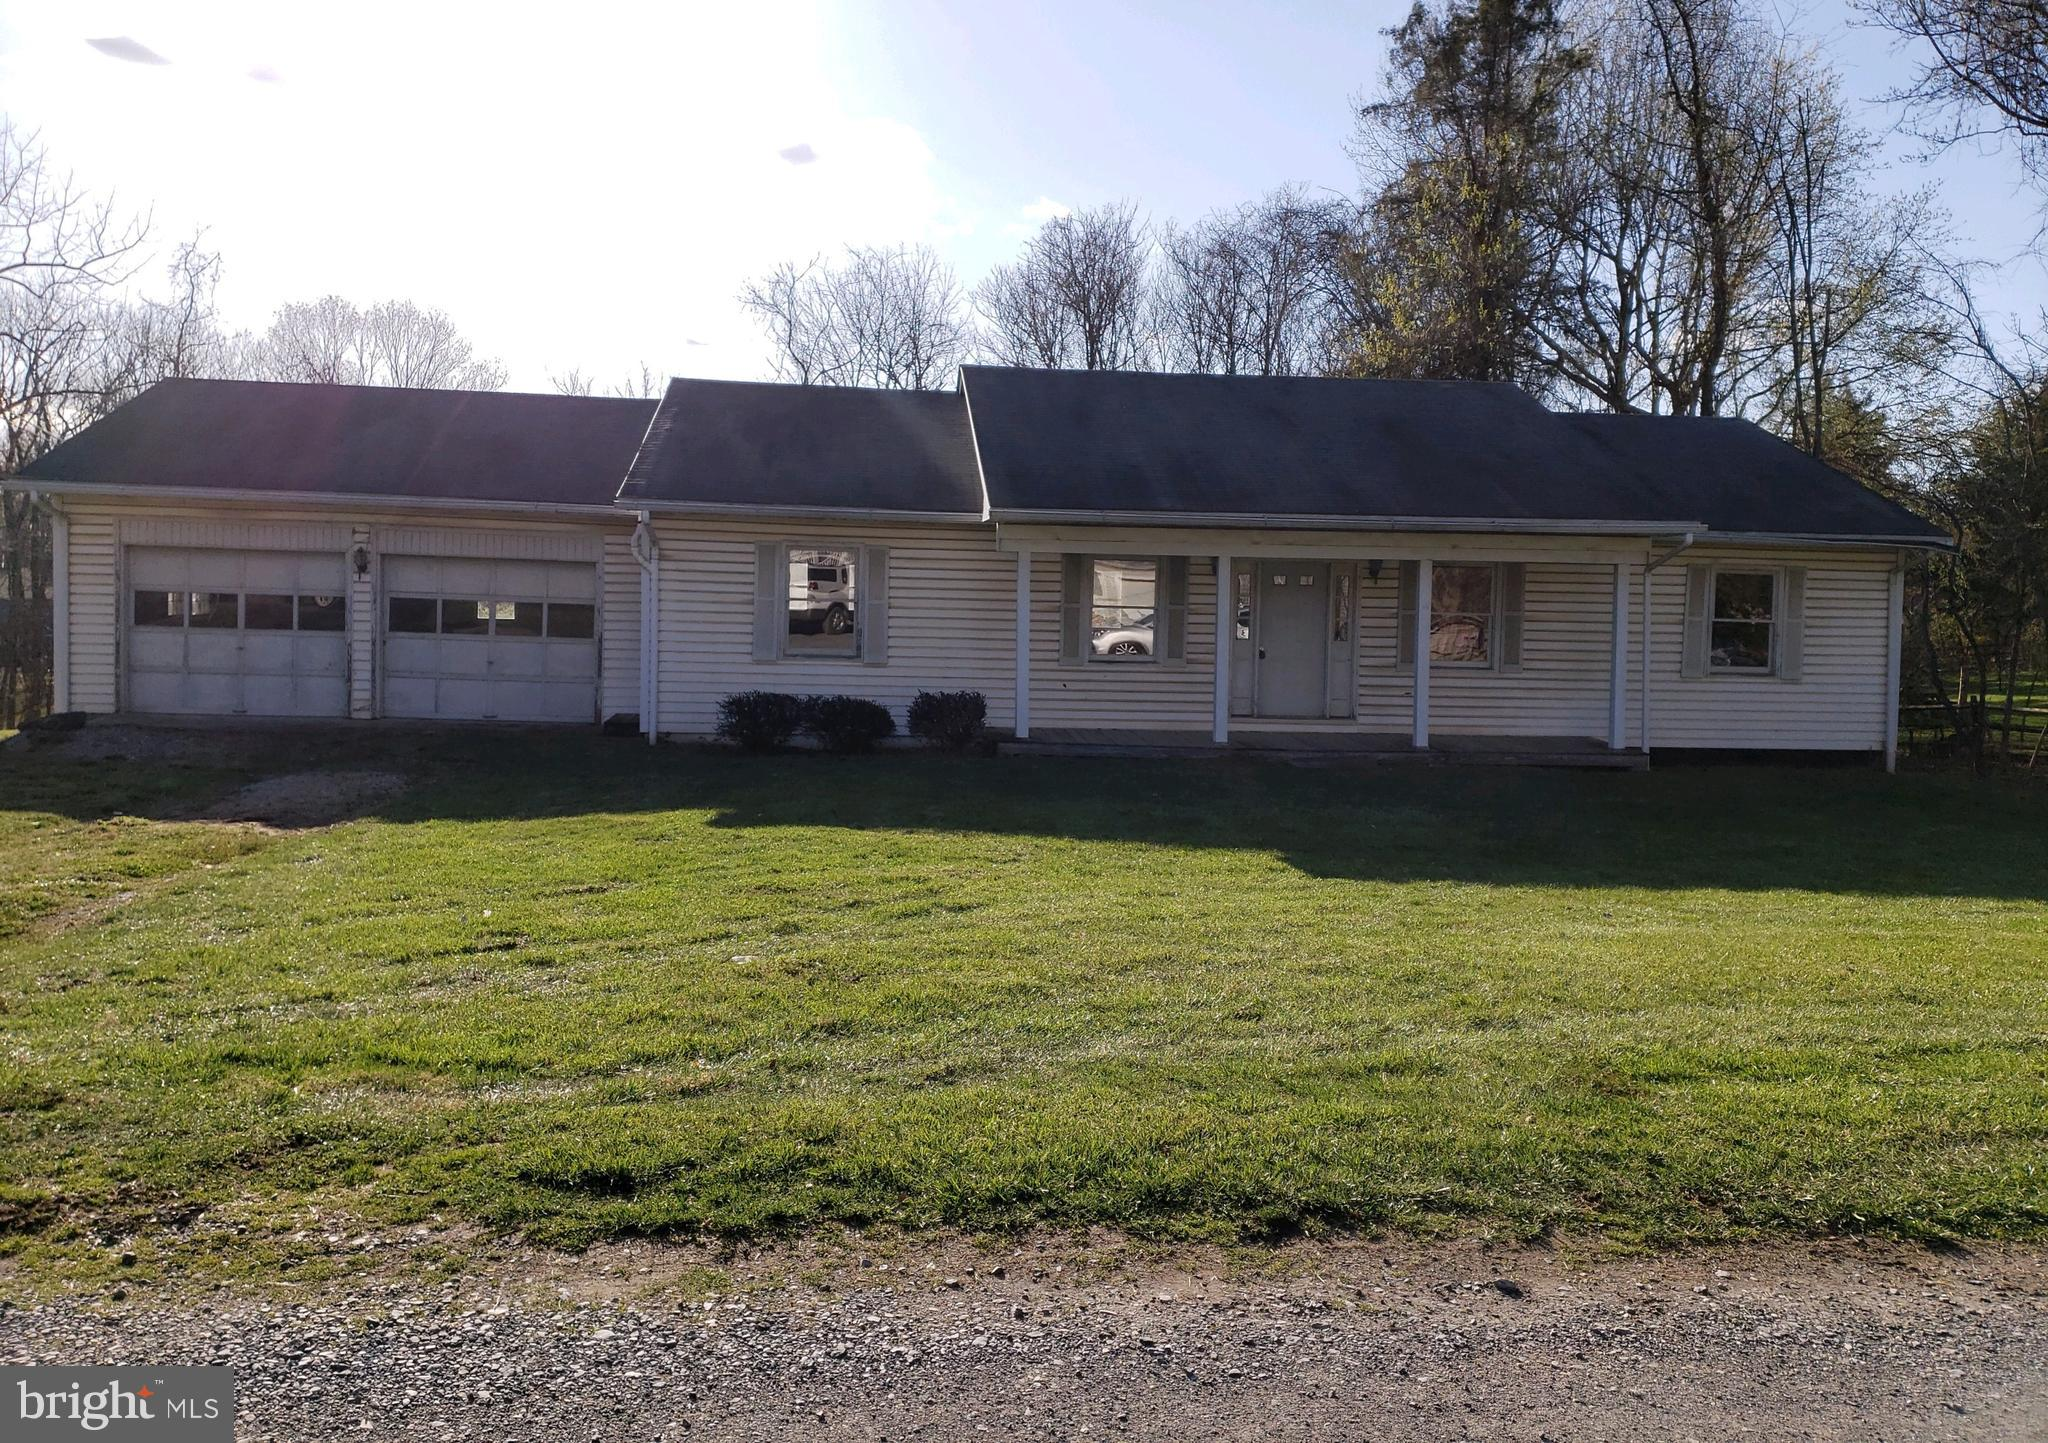 Rancher located in Blue Ridge Acres on a corner lot, 2 bedrooms, 2 bathrooms, full unfinished baseme